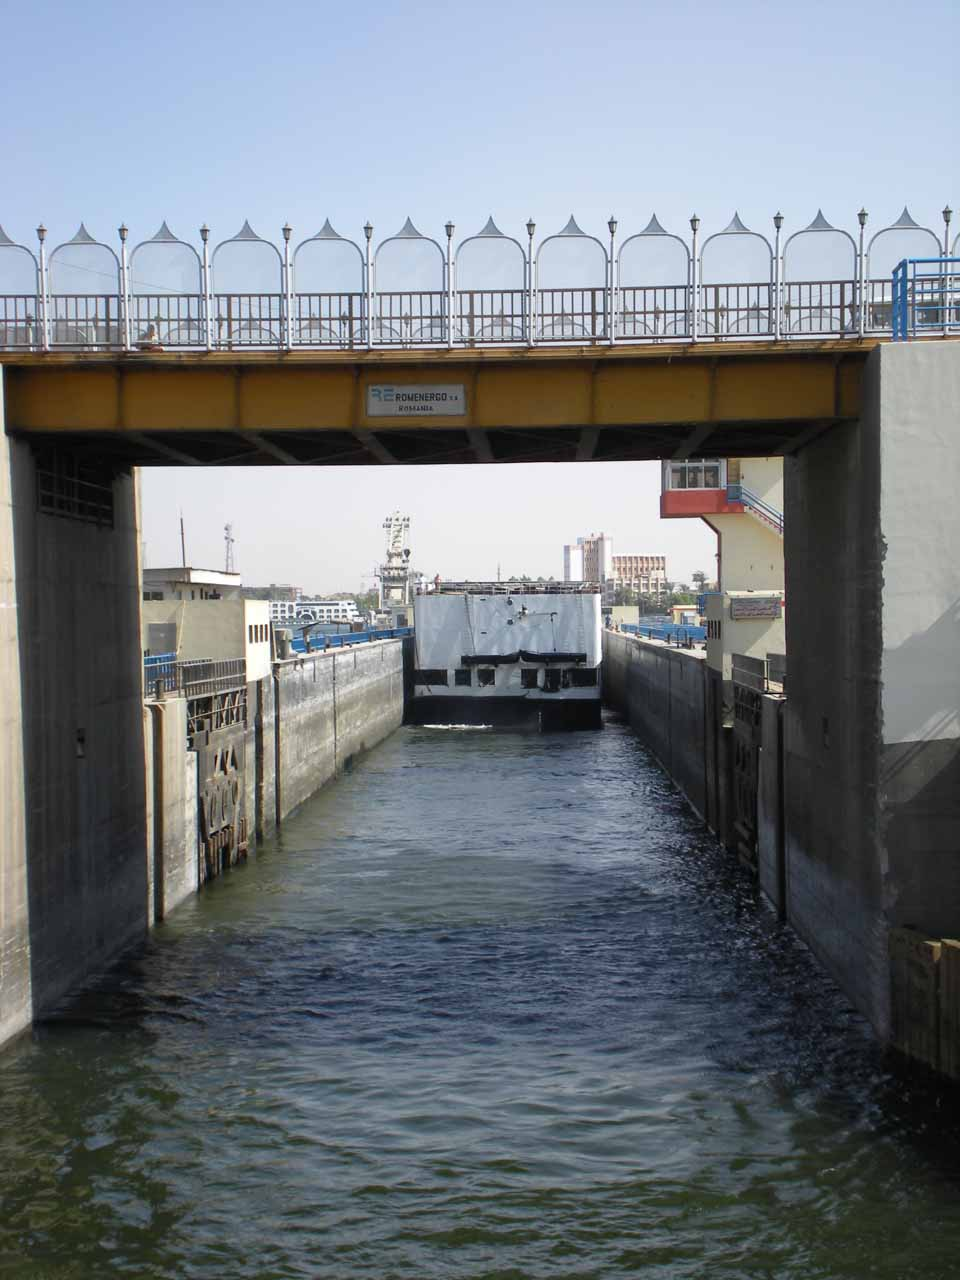 Entering the Esna Lock